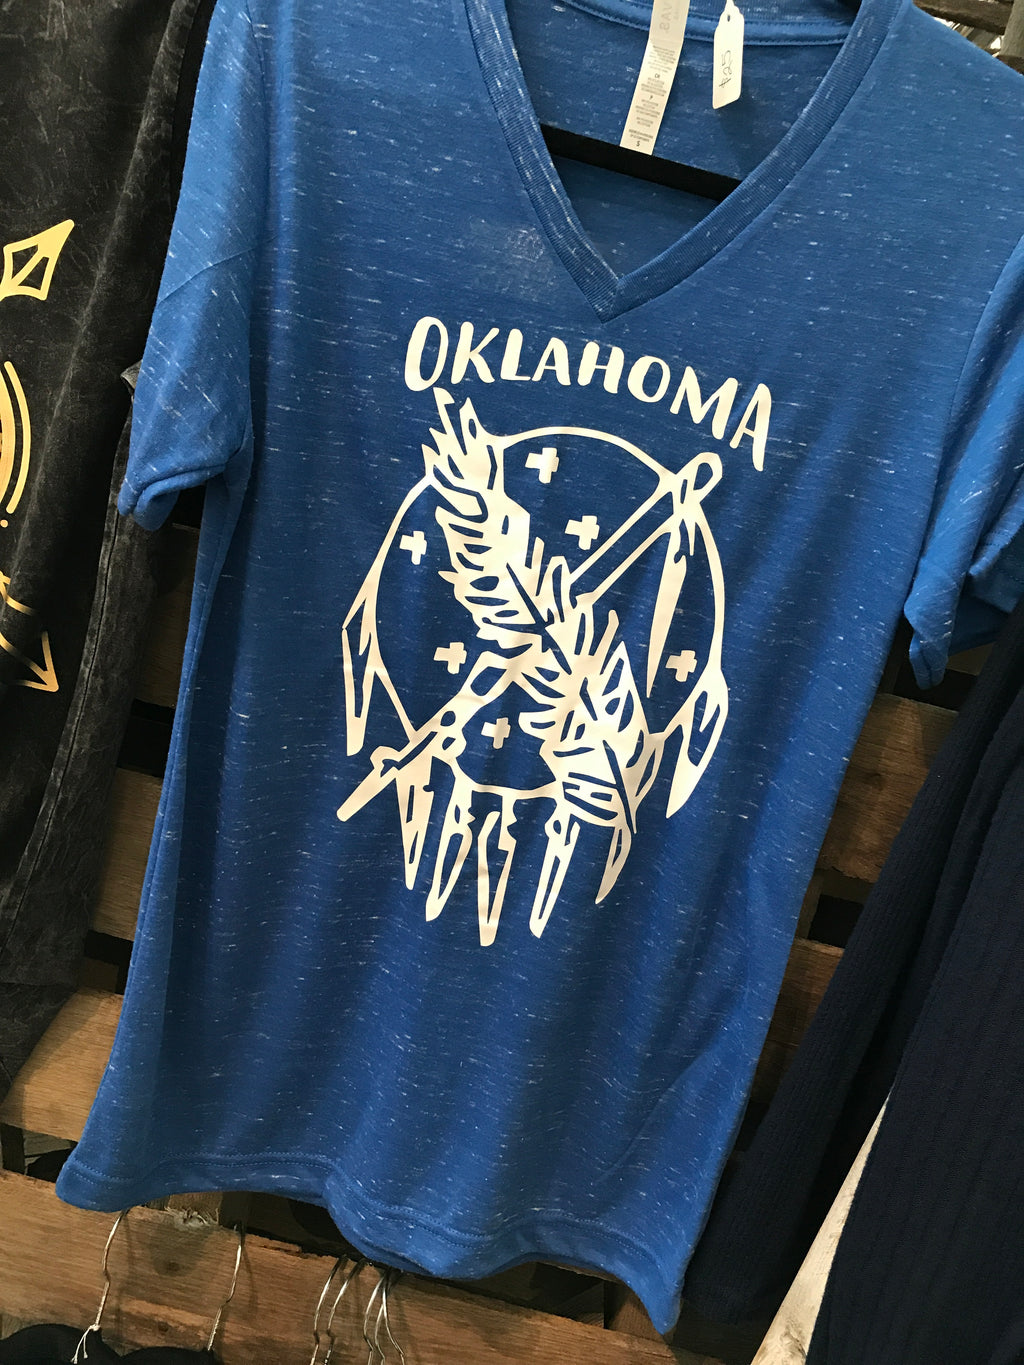 Oklahoma shield